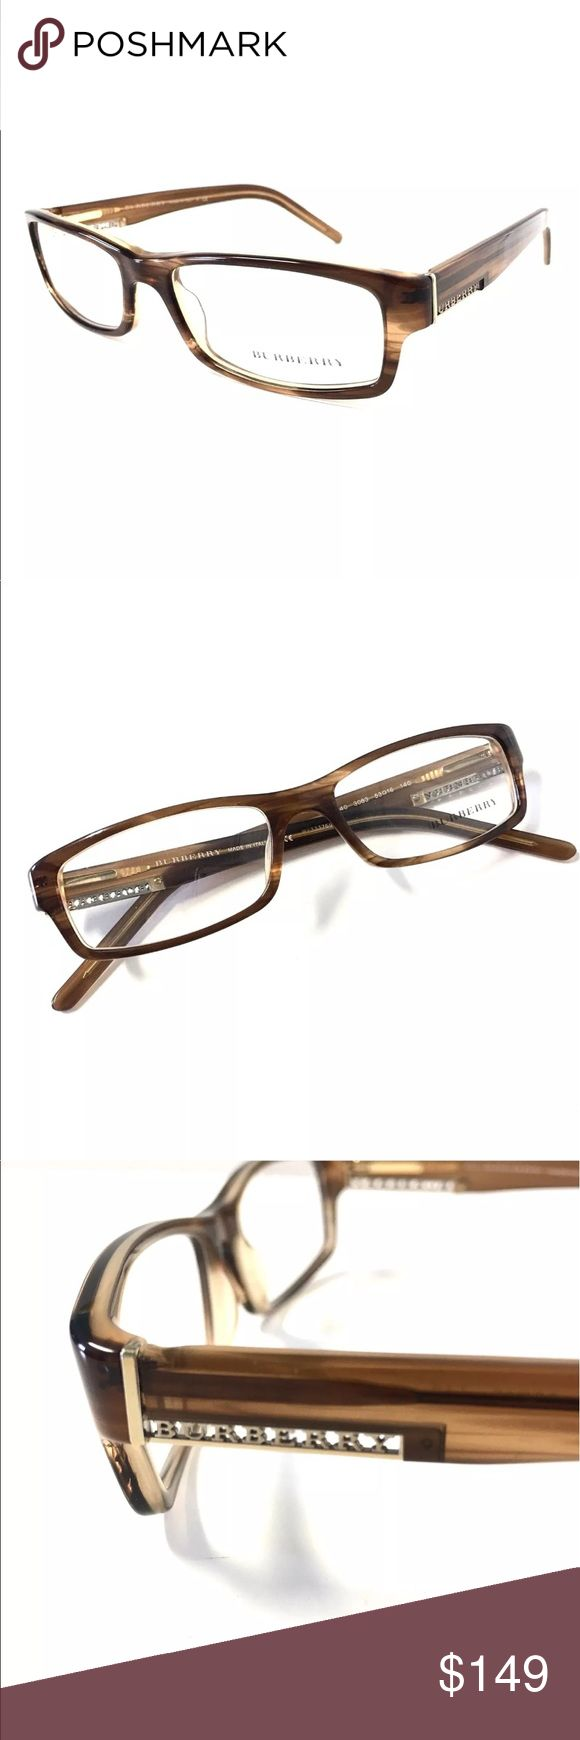 BURBERRY Eyeglasses Brown Horn Brown Horn Burberry Eyeglasses  Burberry Eyeglasses for Prescription lenses  SIZE: 53mm - 16mm - 140mm  🦋100% Authentic!!!  🦋Includes a Burberry Case. No Tags Burberry Accessories Glasses